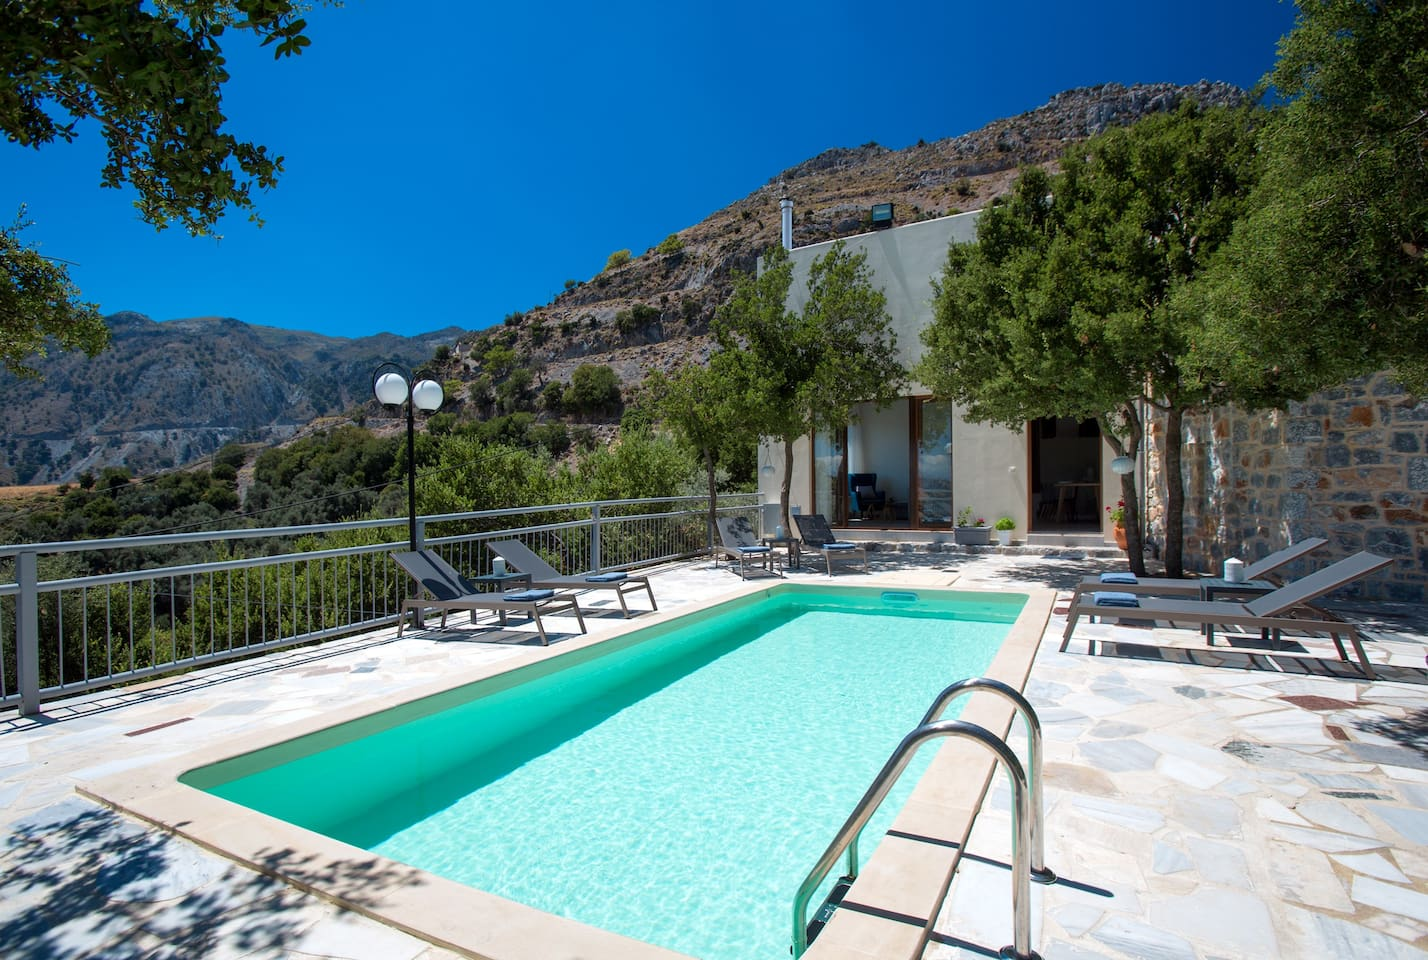 Villa Somnia is just a short 10 minute drive from daily amenities!